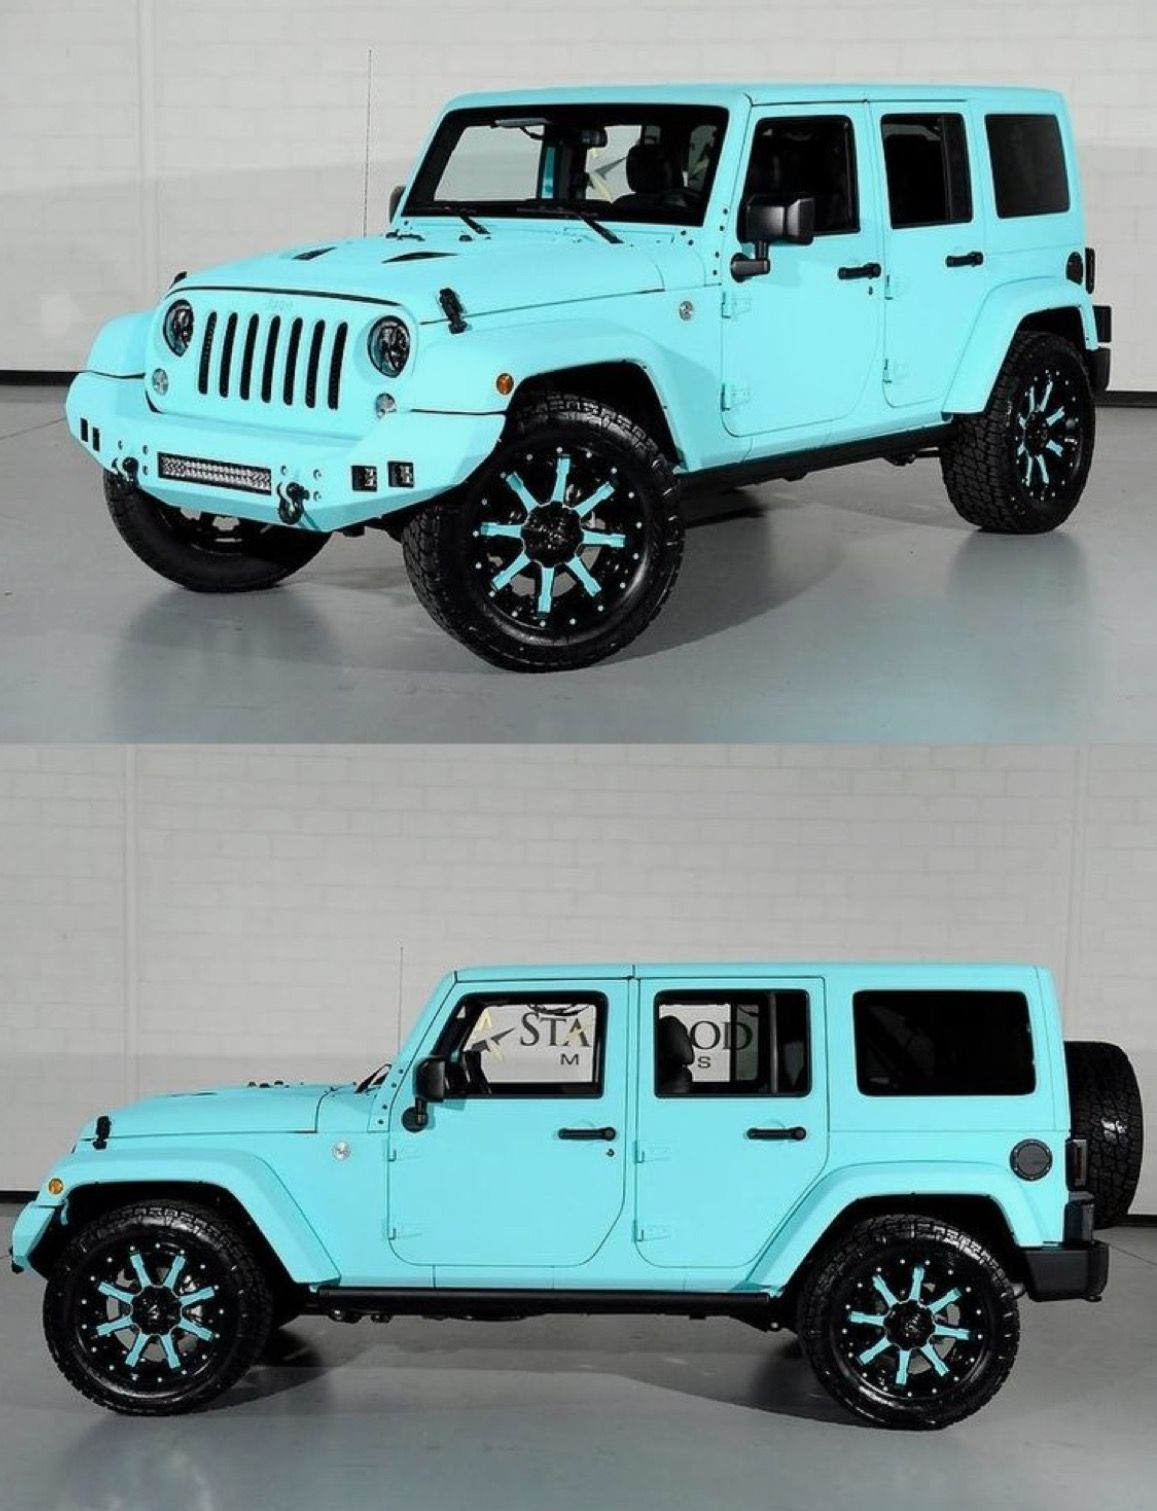 Custom Paint Job On A Four Door Hard Top Jeep Wrangler The Tiffany Blue Color Is Insane Custom Cars Paint Custom Jeep Wrangler Jeep Wrangler